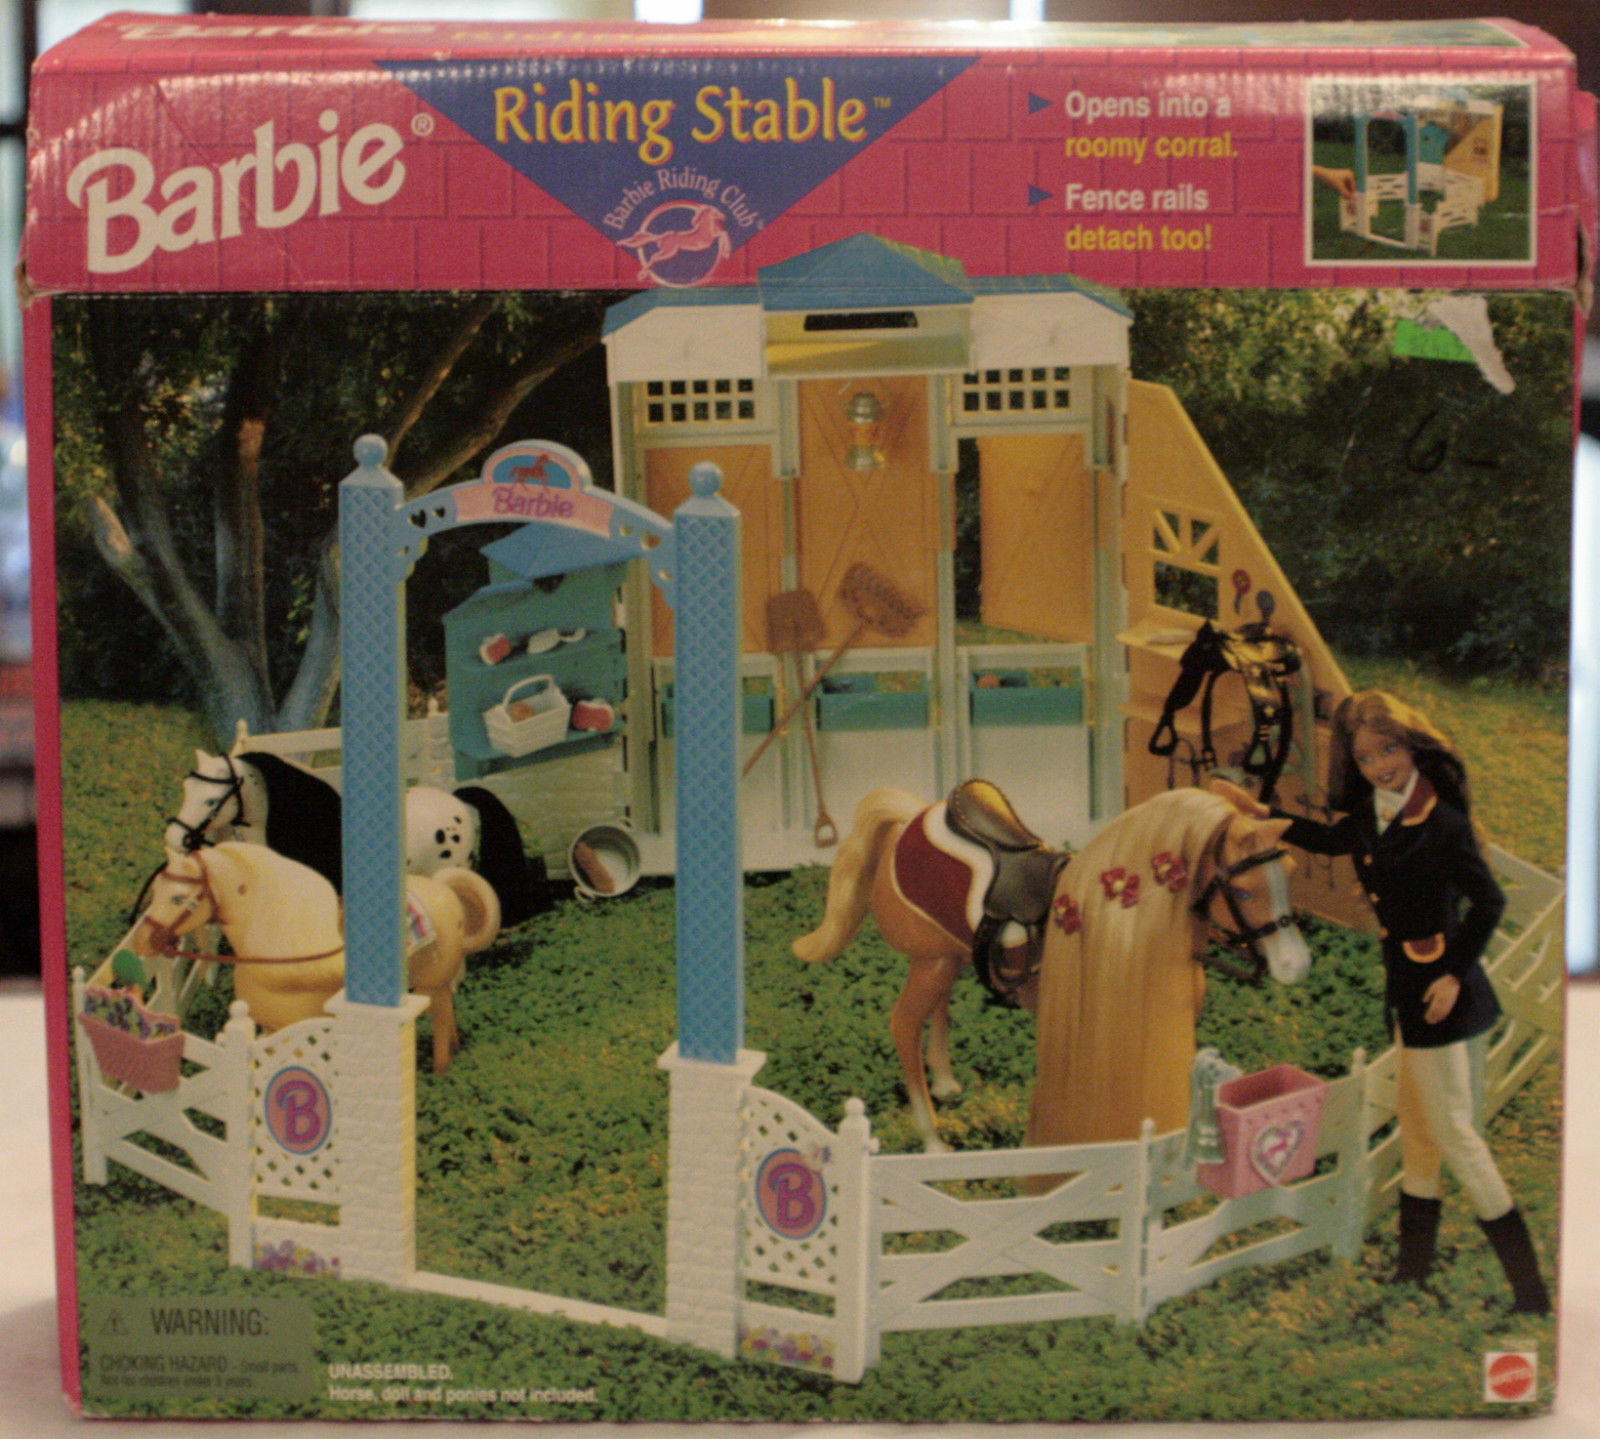 1998 Barbie Horse Riding Stable Barbie Doll Friends And Family History And News From 1959 To The Present